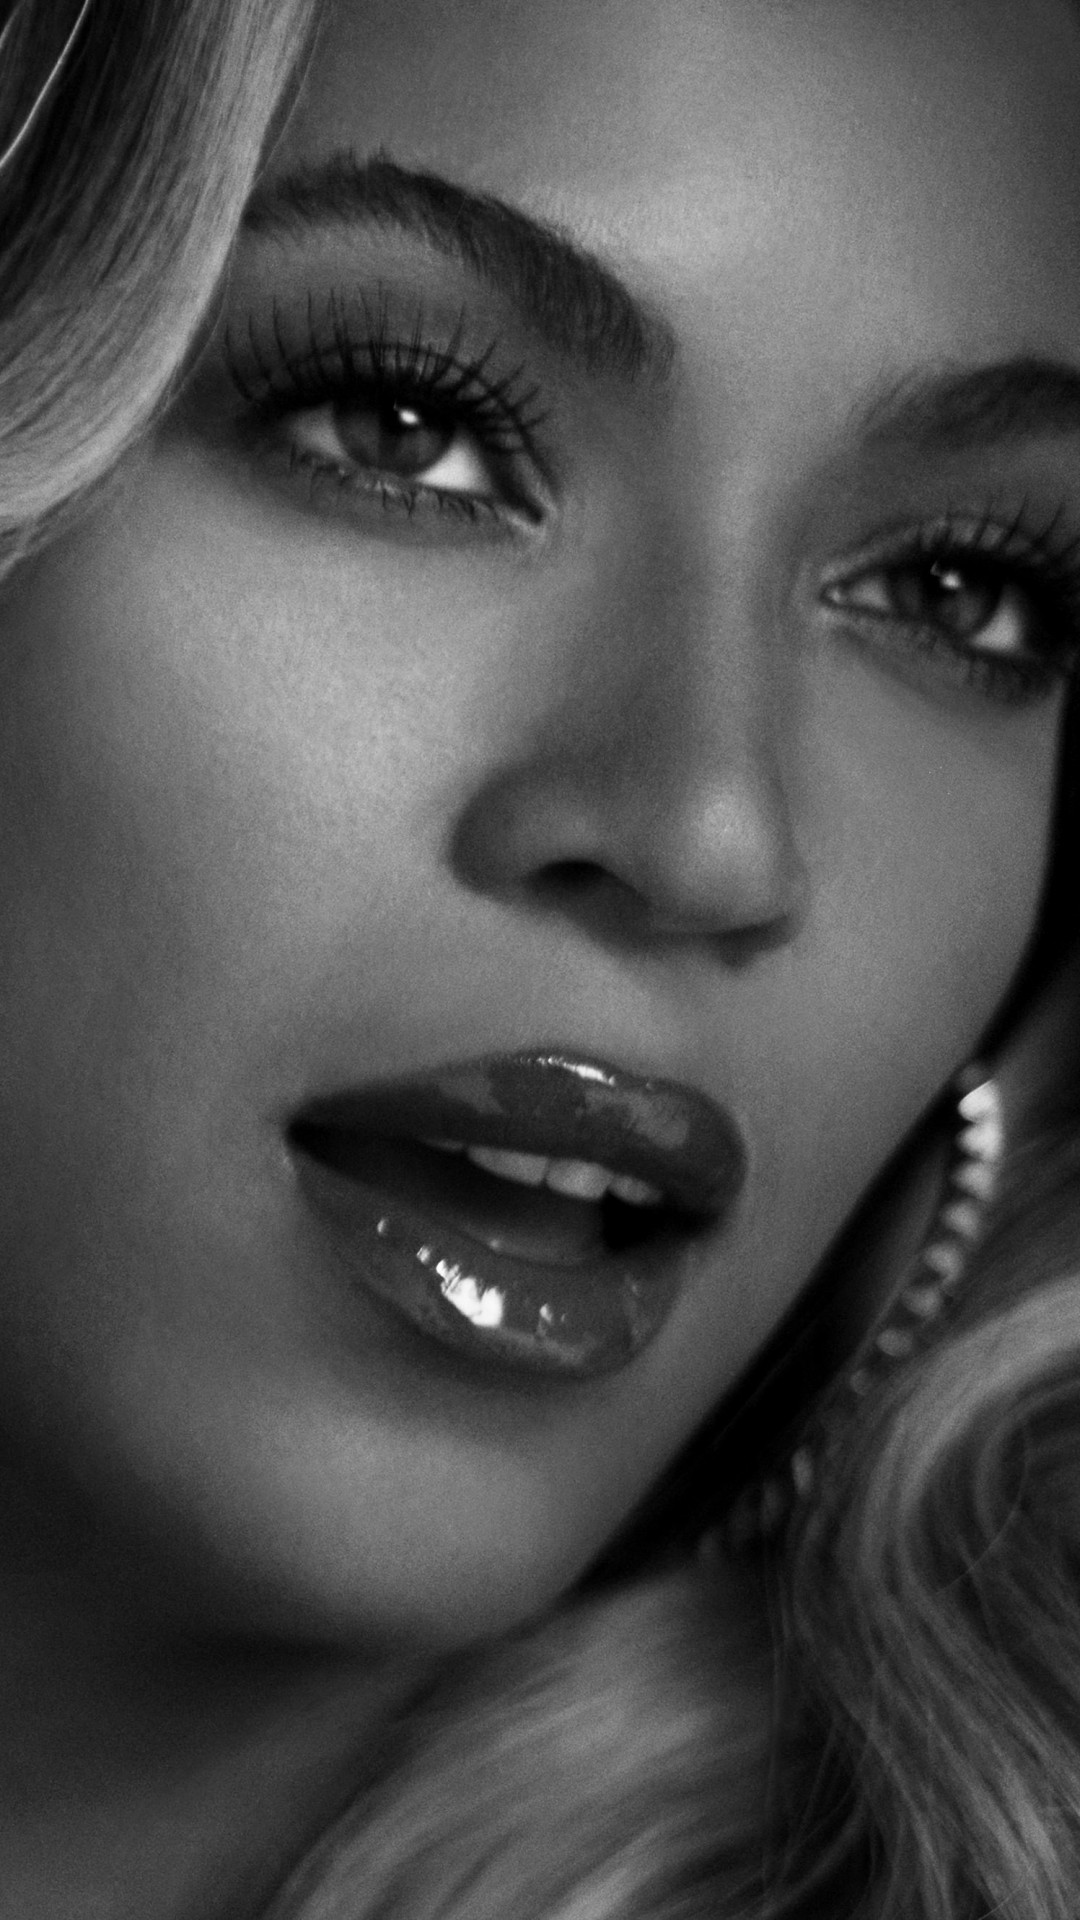 Beyonce in Black & White Wallpaper for SONY Xperia Z3